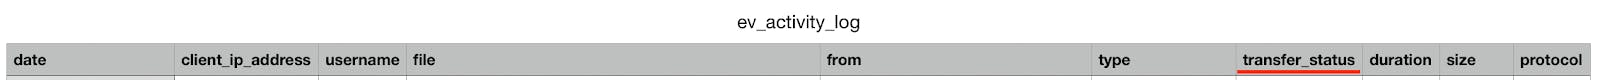 Column headers for activity logs CSV file.